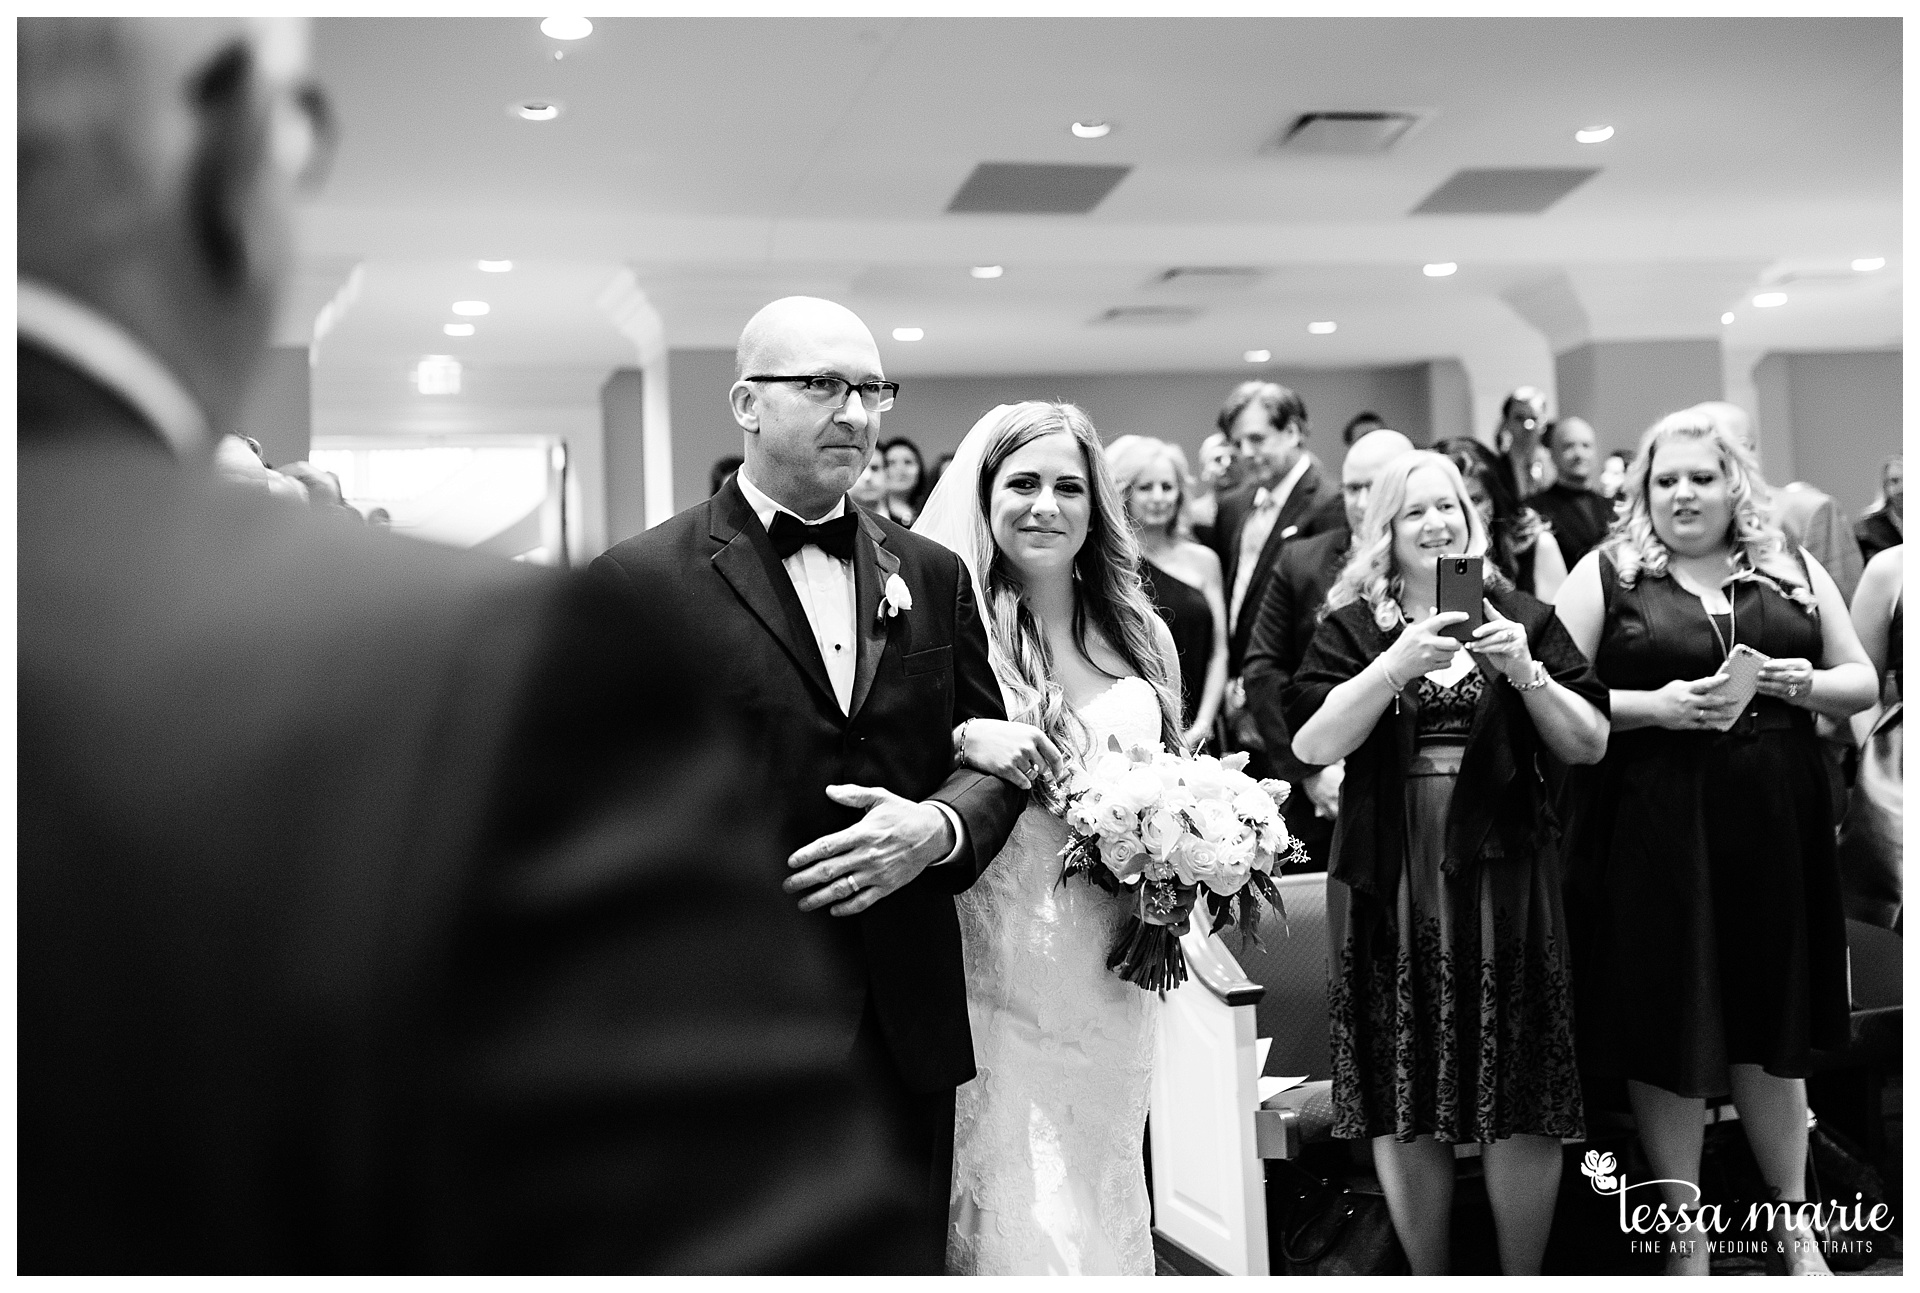 tessa_marie_weddings_legacy_story_focused_wedding_pictures_atlanta_wedding_photographer_0108